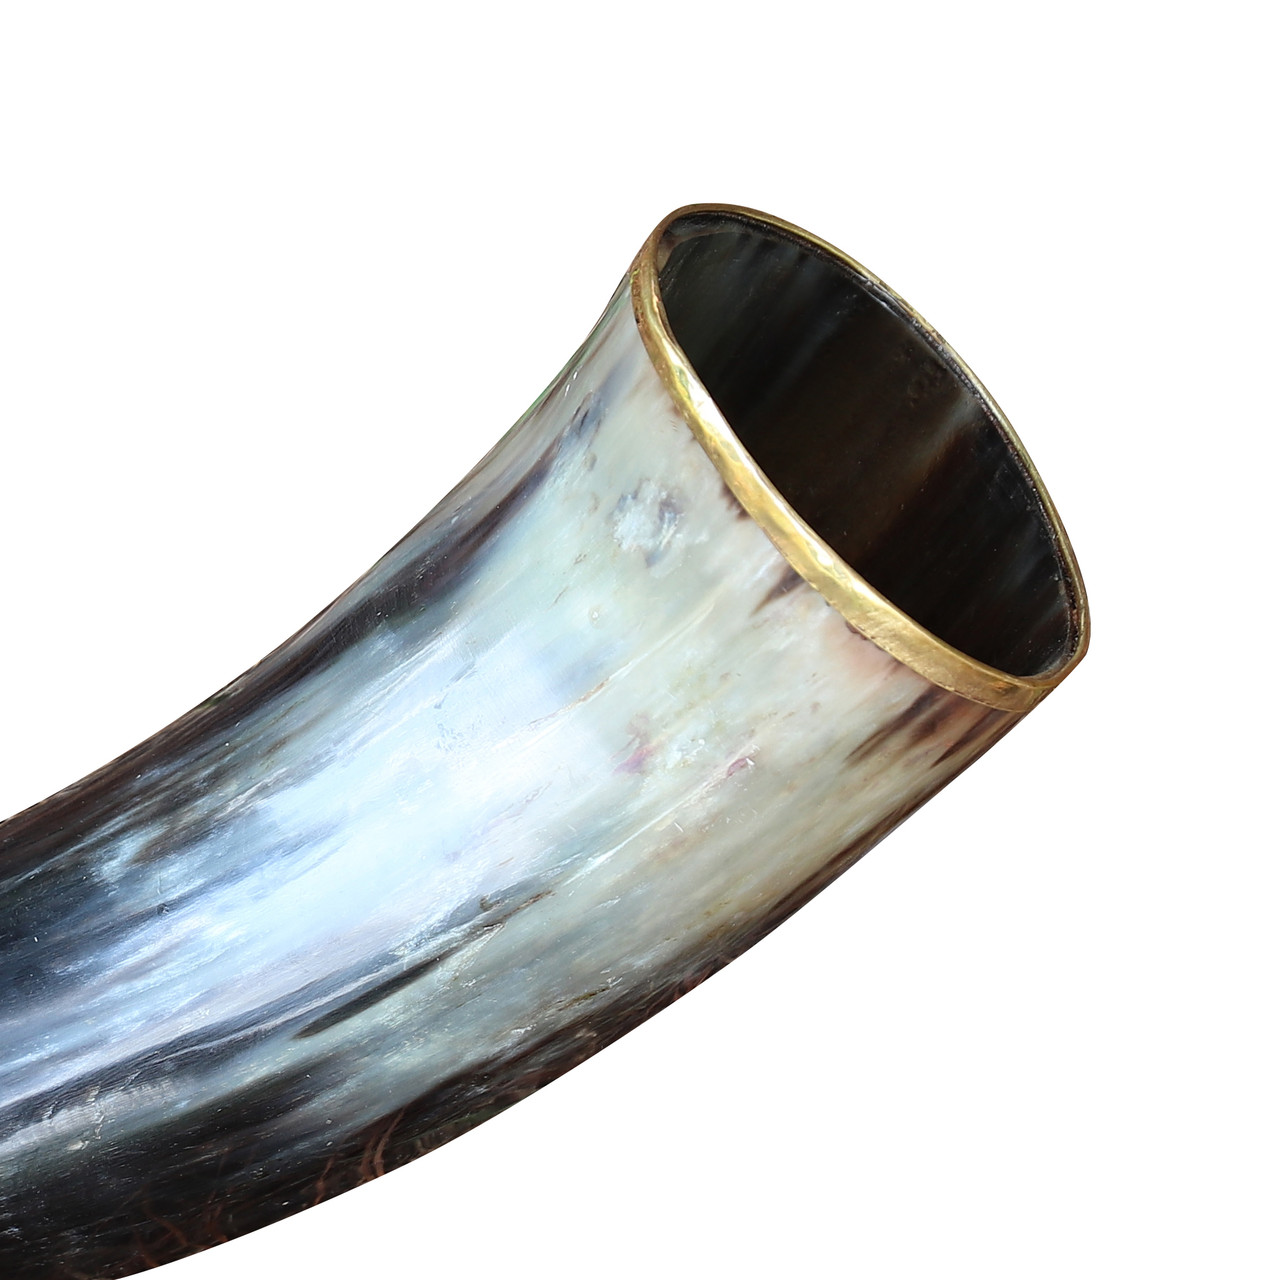 The Hooded Raven 'Ñ¢ Large Pure Brass Rim Drinking Horn Canvas Pouch Included